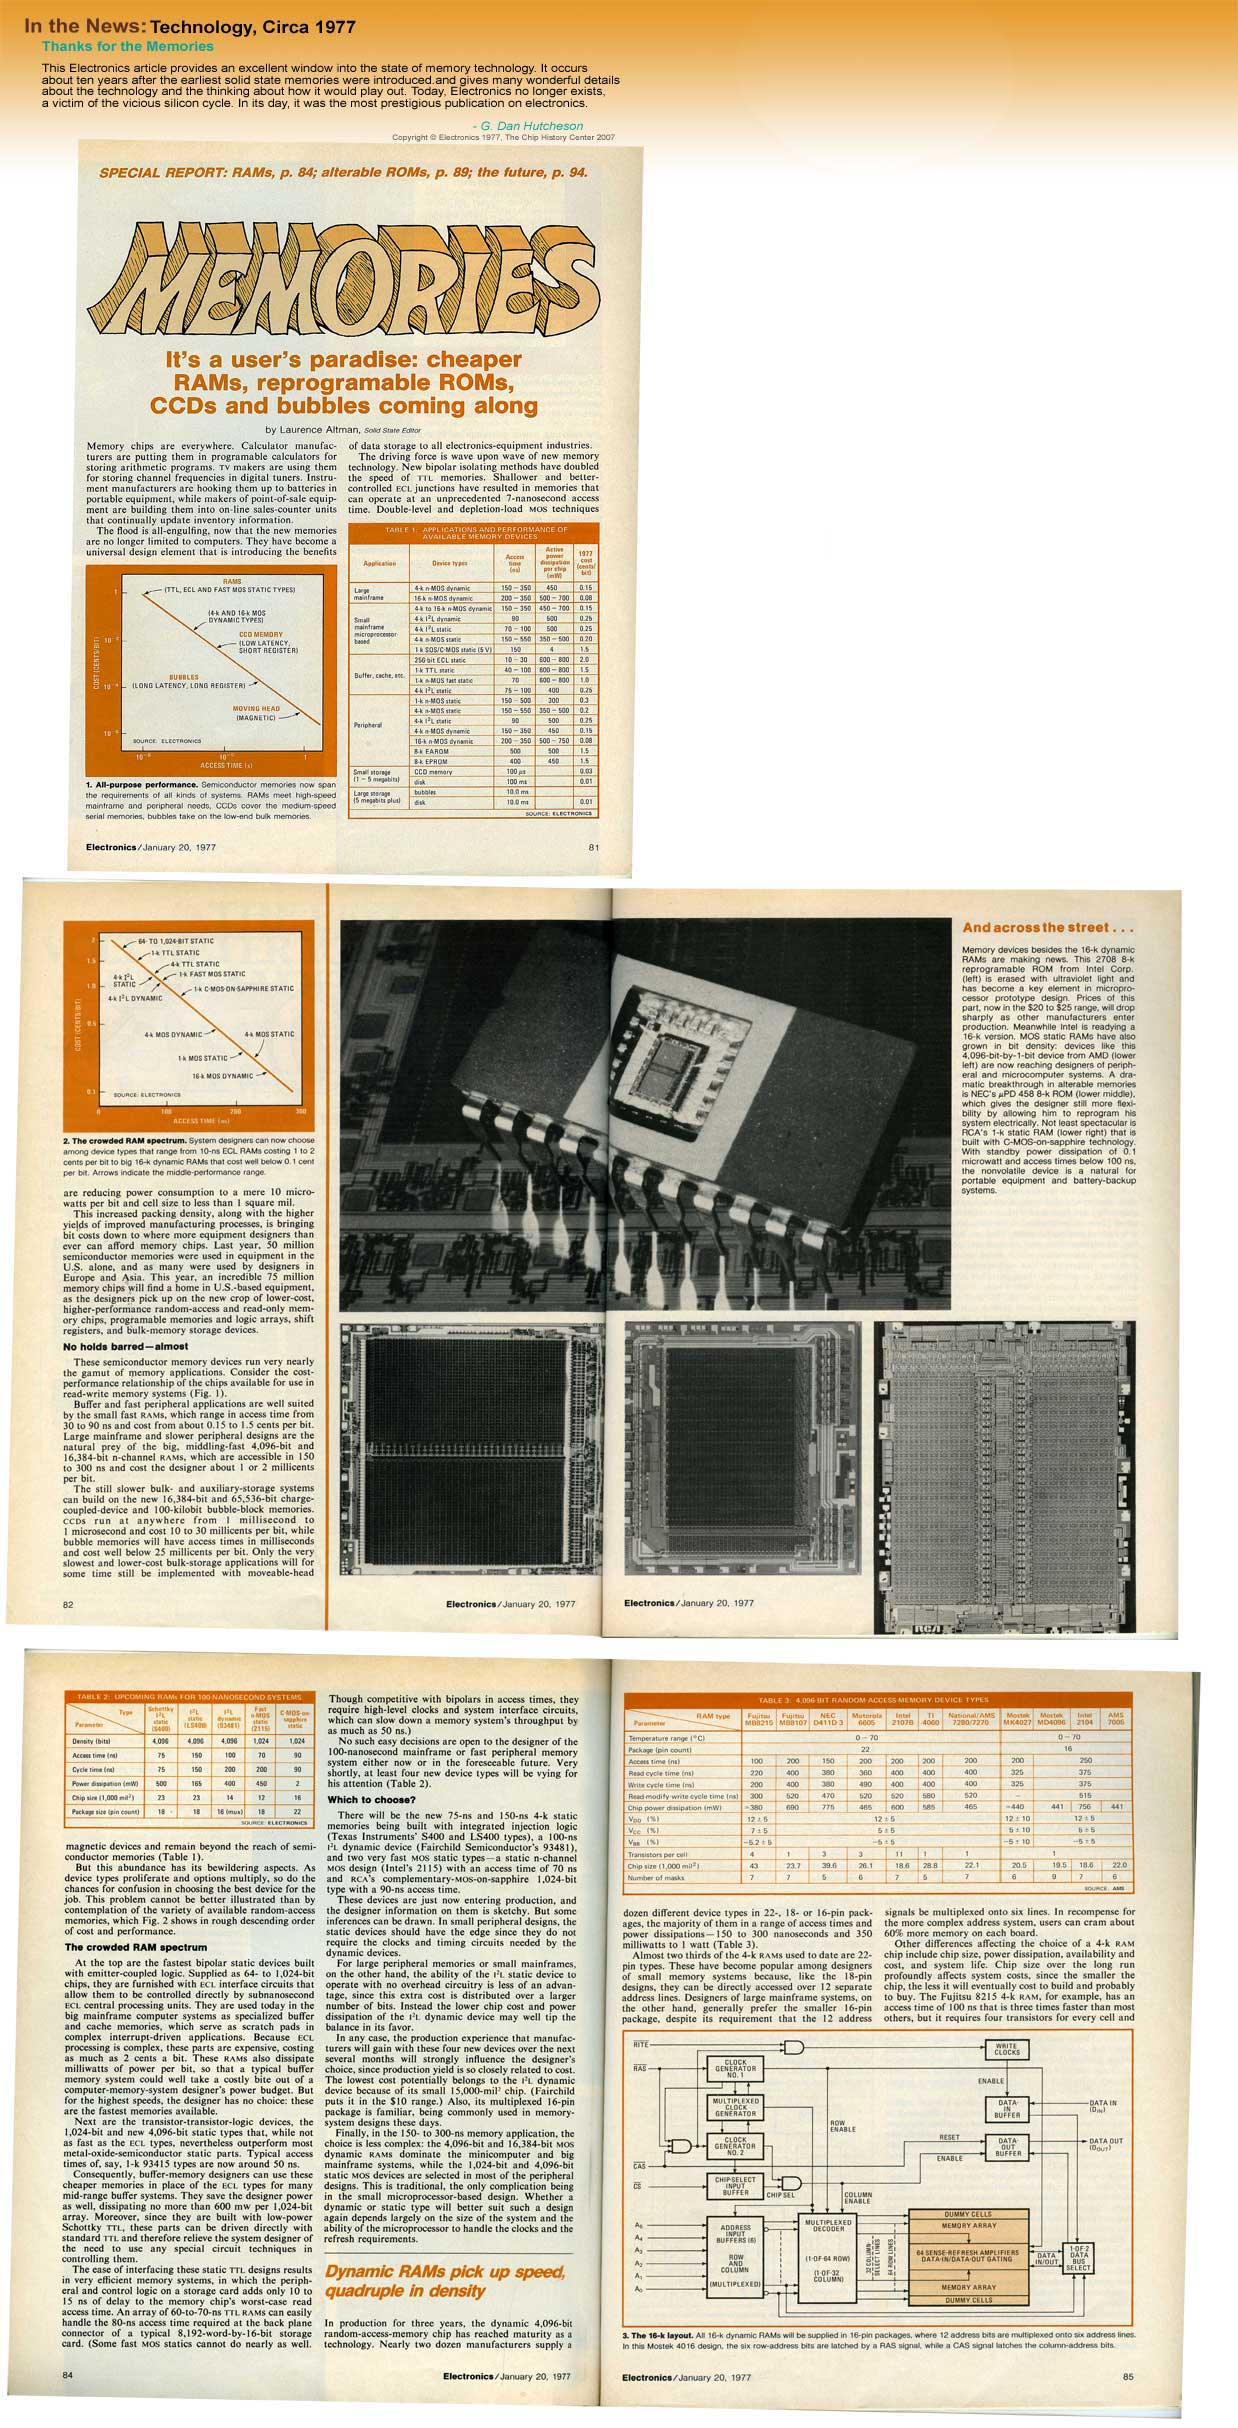 In the News: Technology, Circa 1977